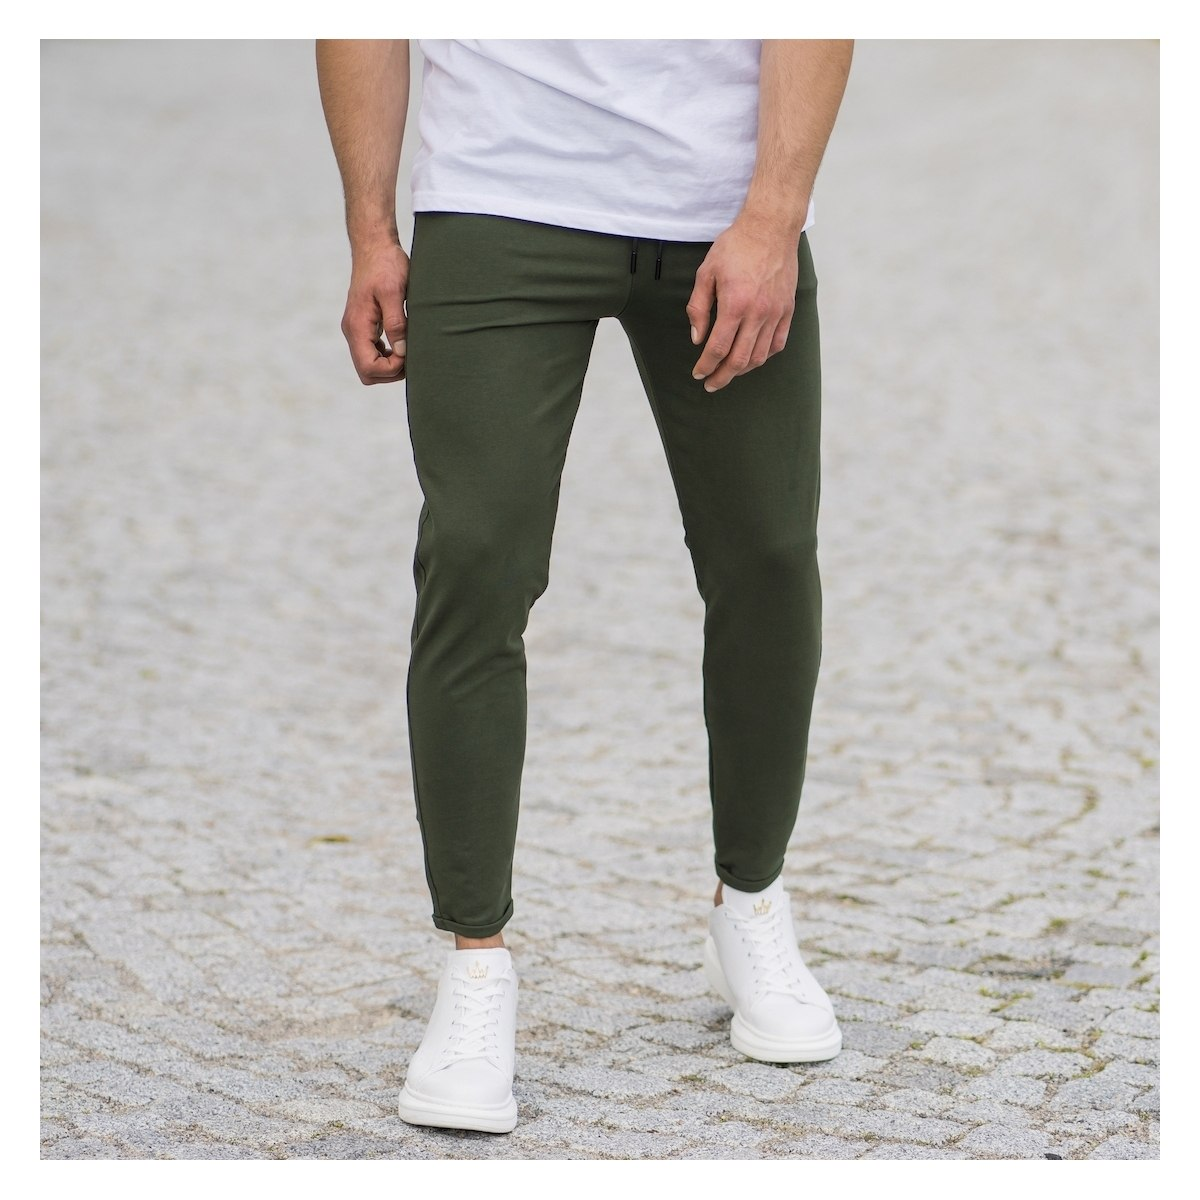 Men's Skinny Basic SweatPants In Khaki